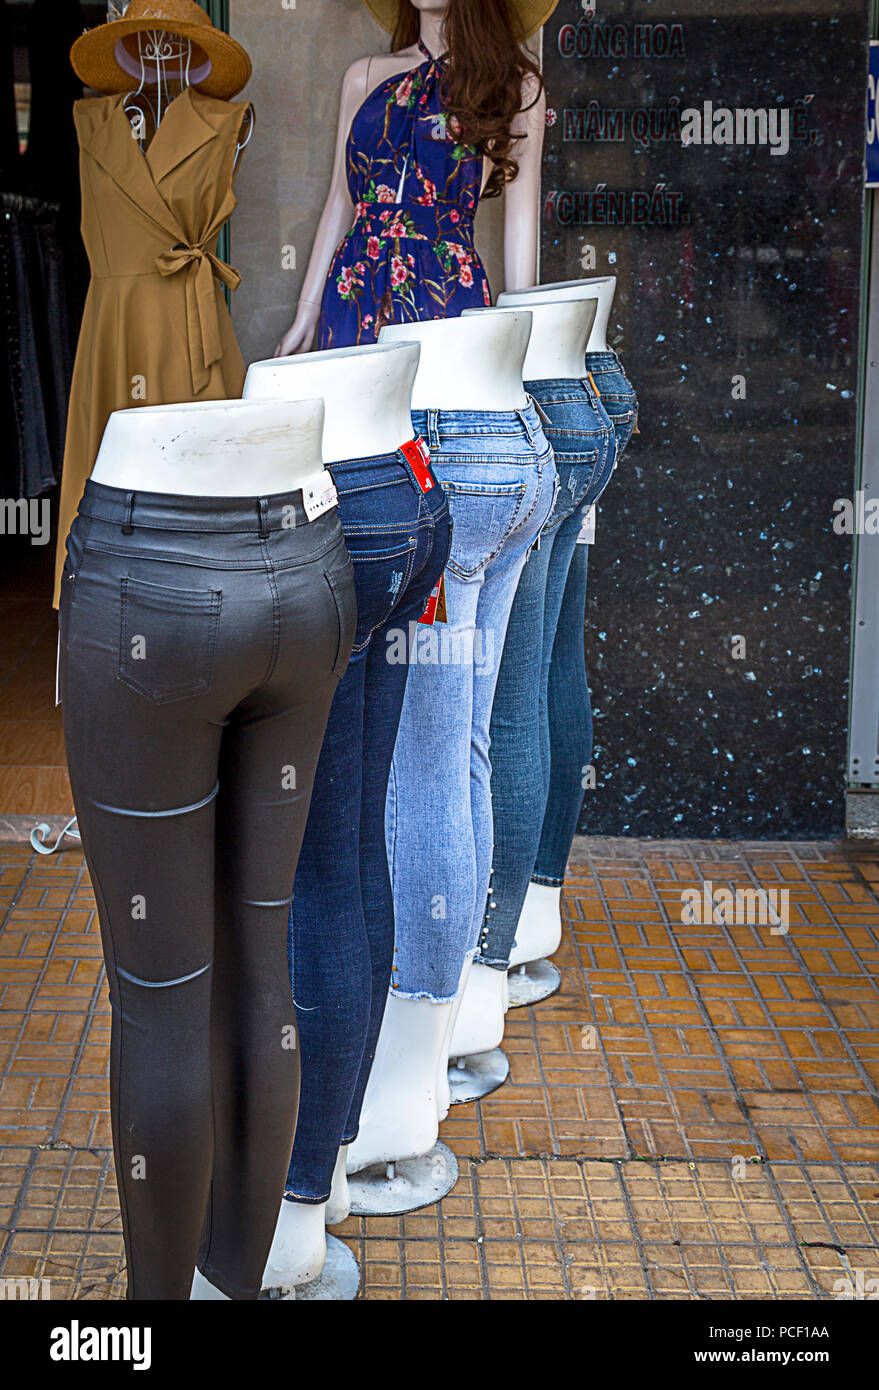 20a423f7642 Mannequins with tight jeans outside in front of retail store in Vietnam